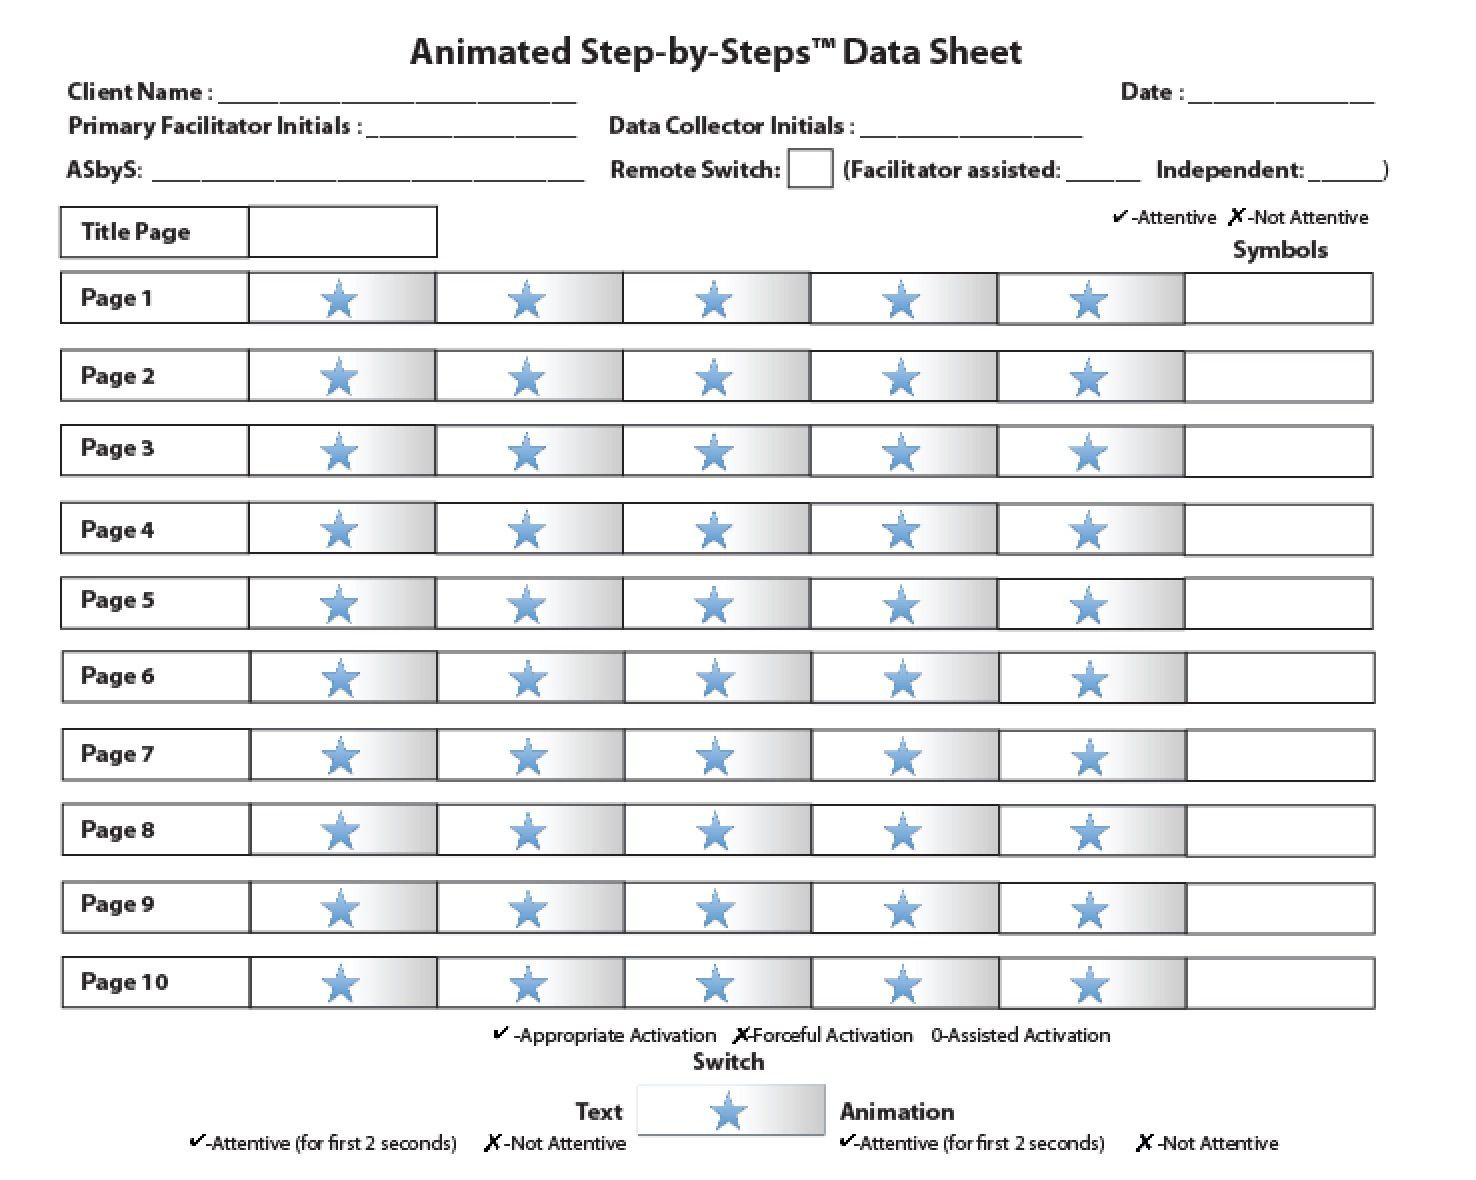 Animated step by steps asbys data sheet aba as you can see from the data sheet you must document the nameinitials of the primary facilitator the data collector and the name of the asbys that you biocorpaavc Image collections